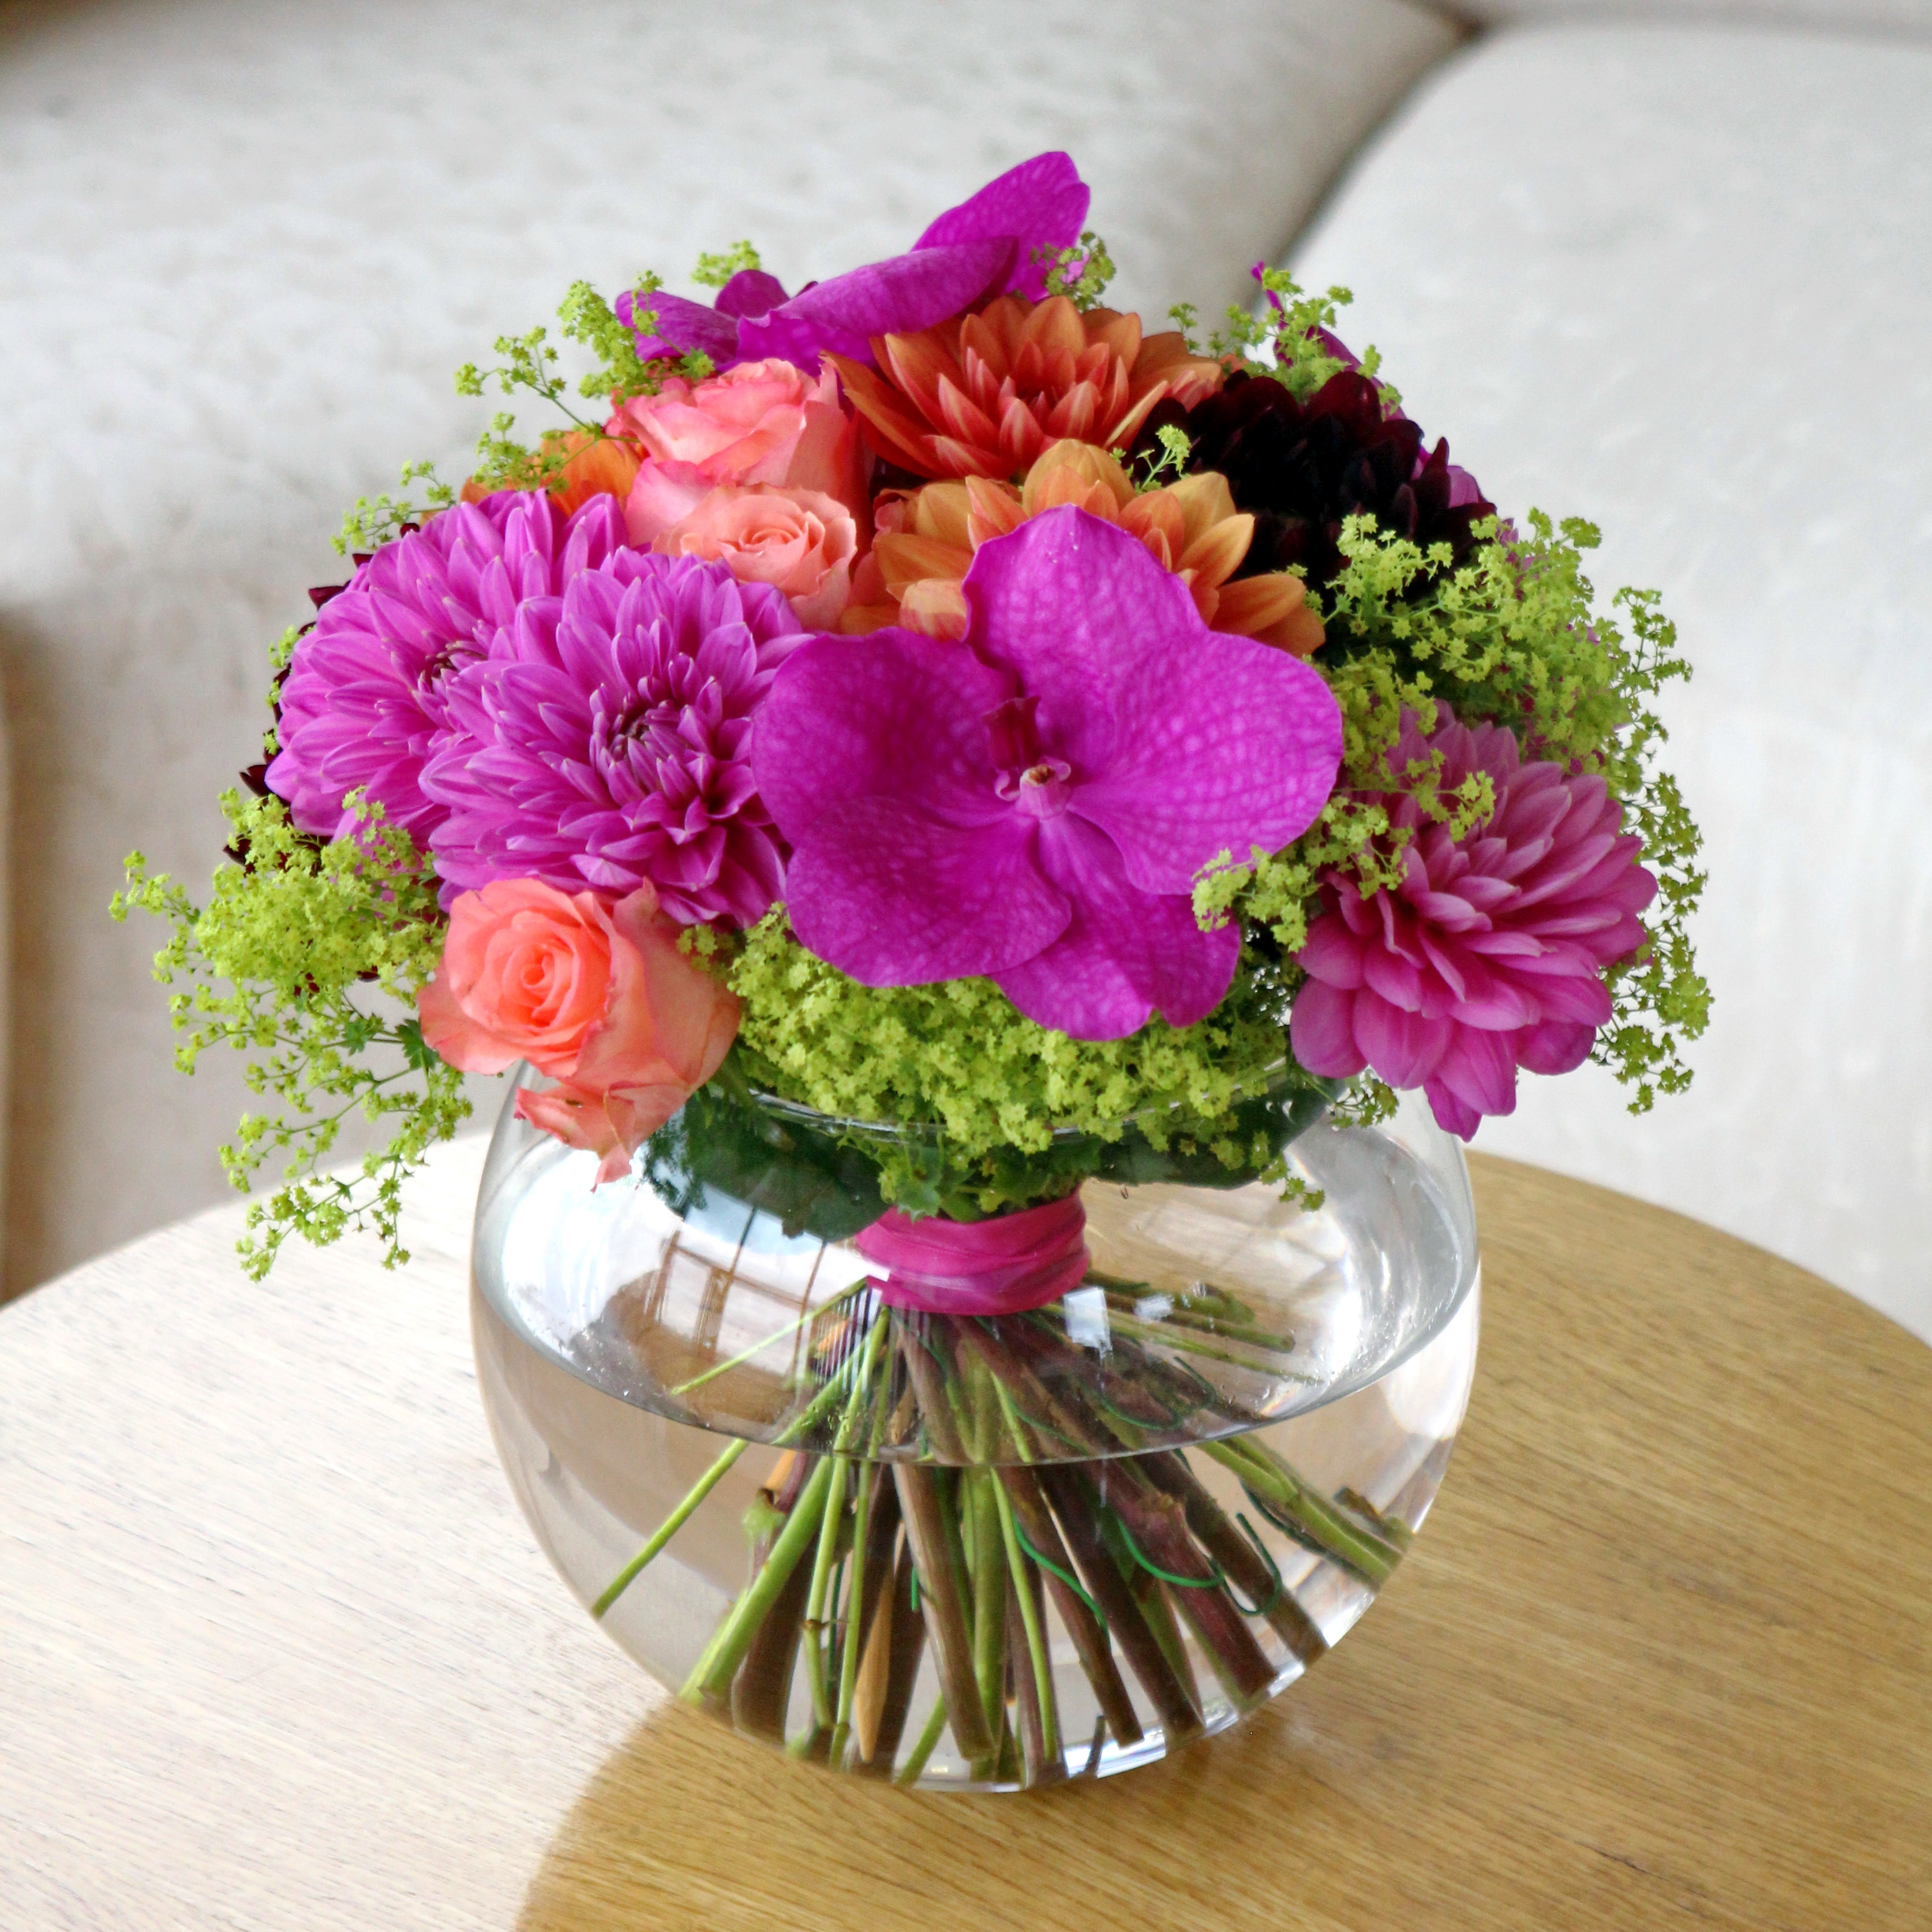 Flowers From You: Autumn Flowers & Gifts - Flowers Blog